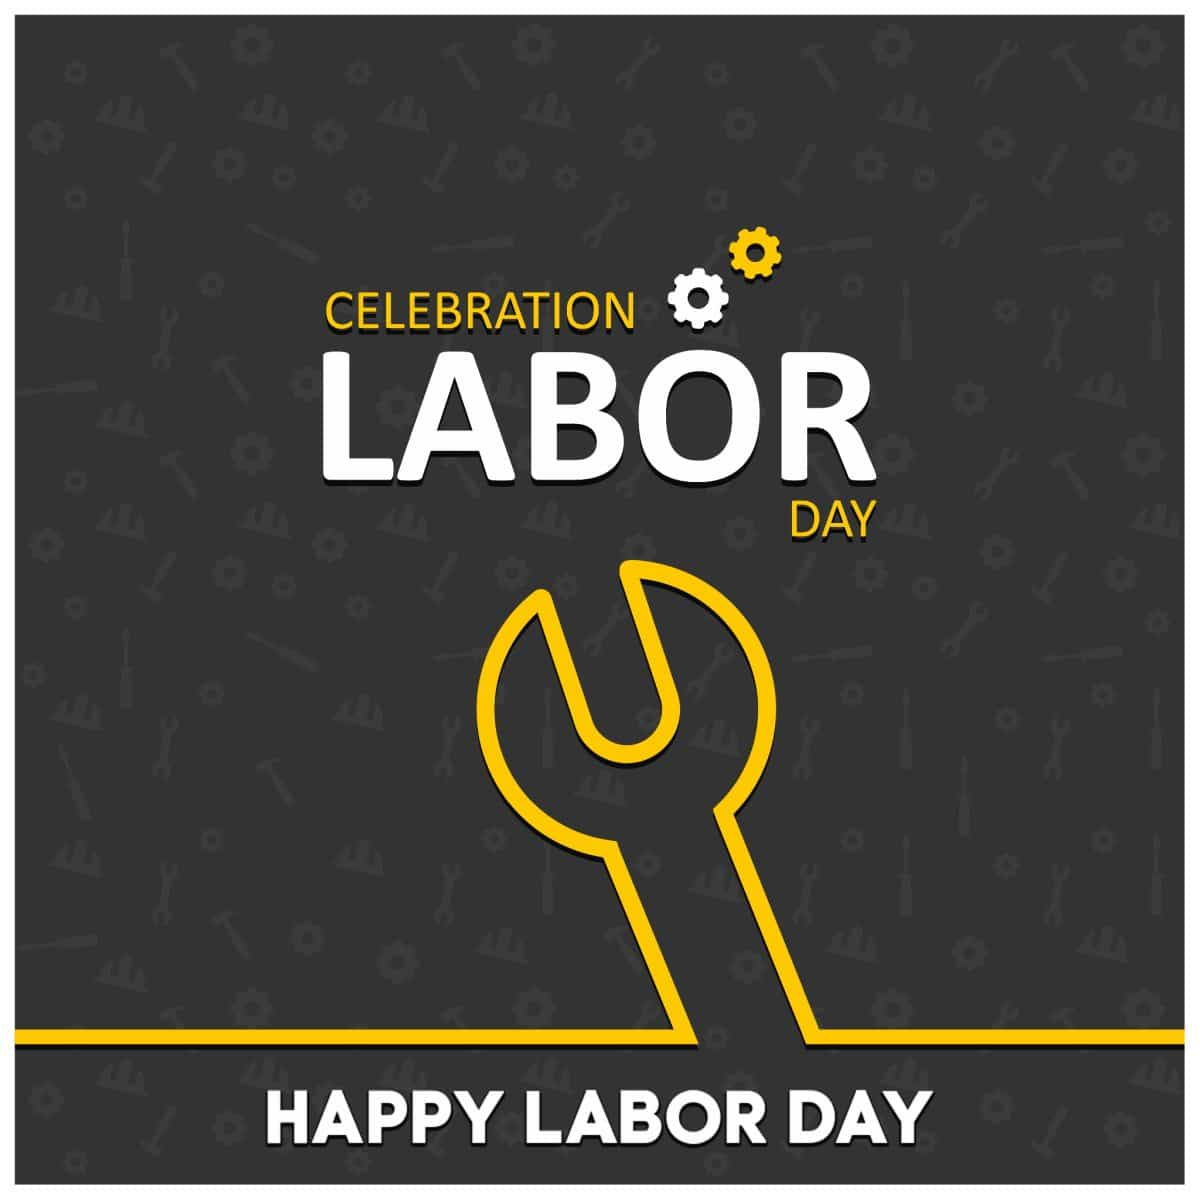 labor day image of a wrench